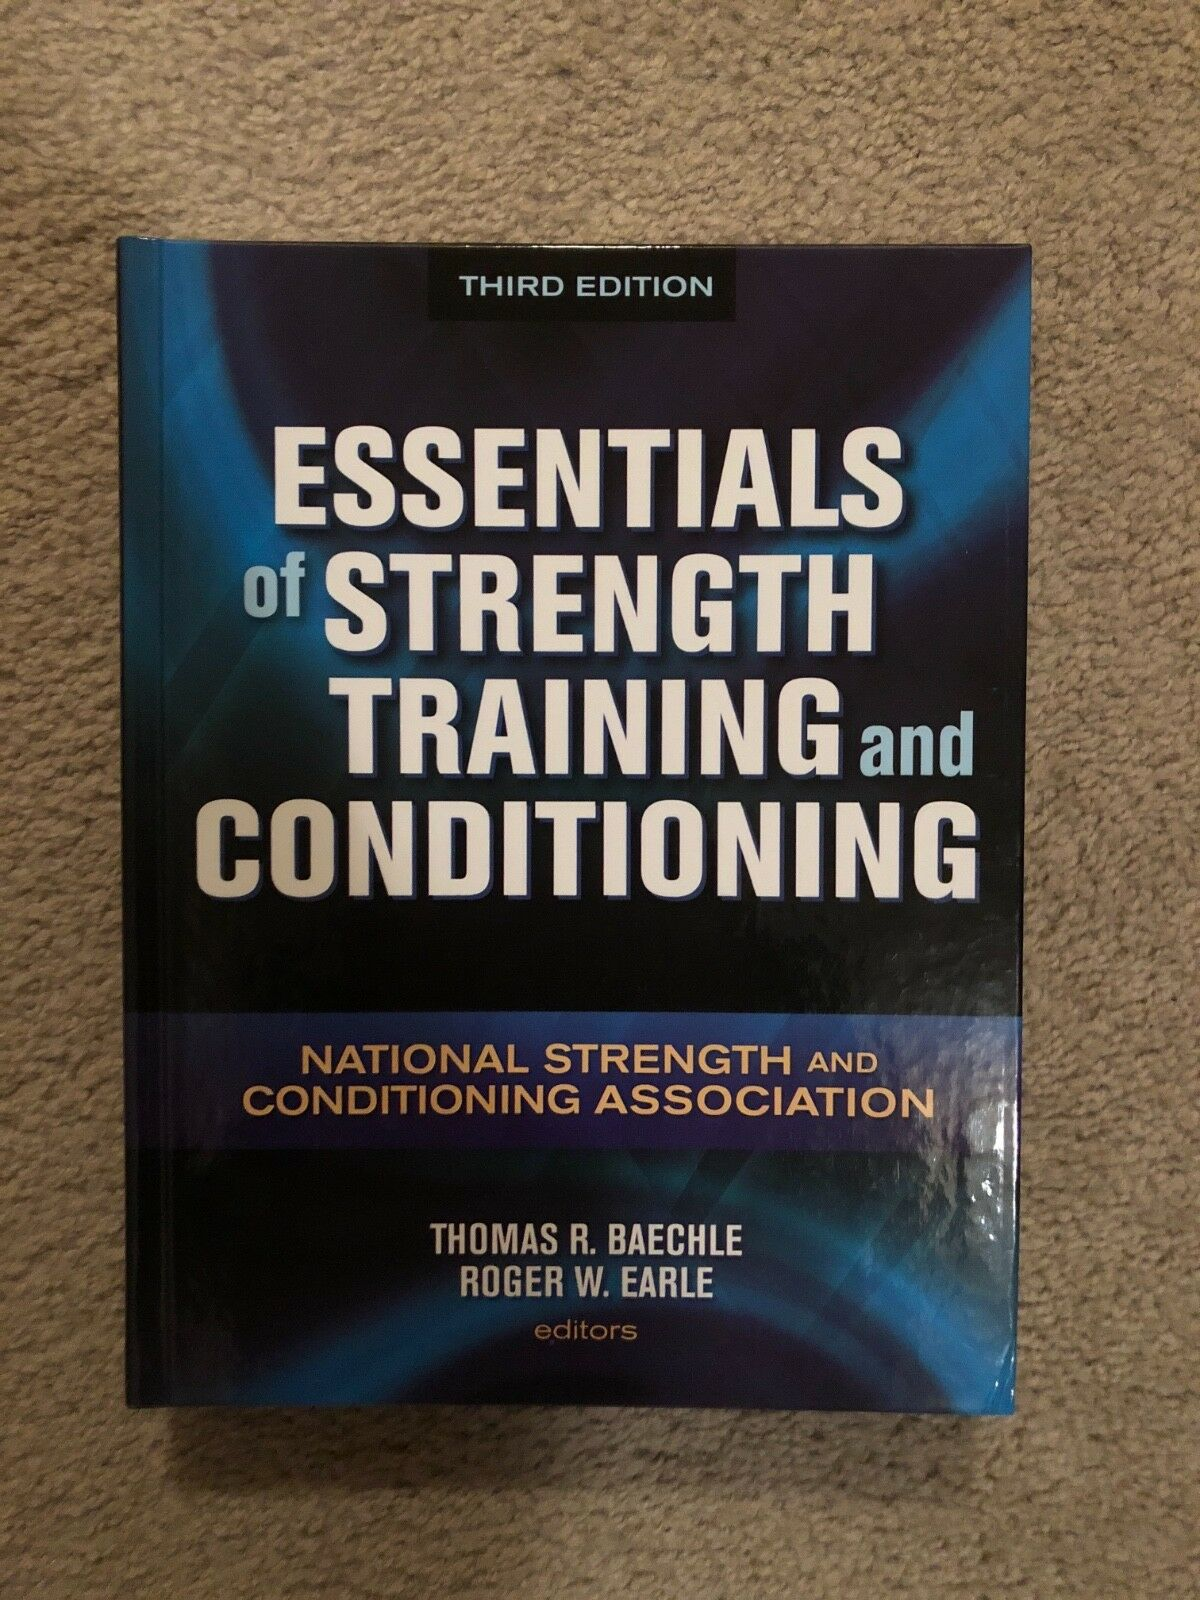 Essentials of strength training and conditioning by national resntentobalflowflowcomponentncel fandeluxe Image collections